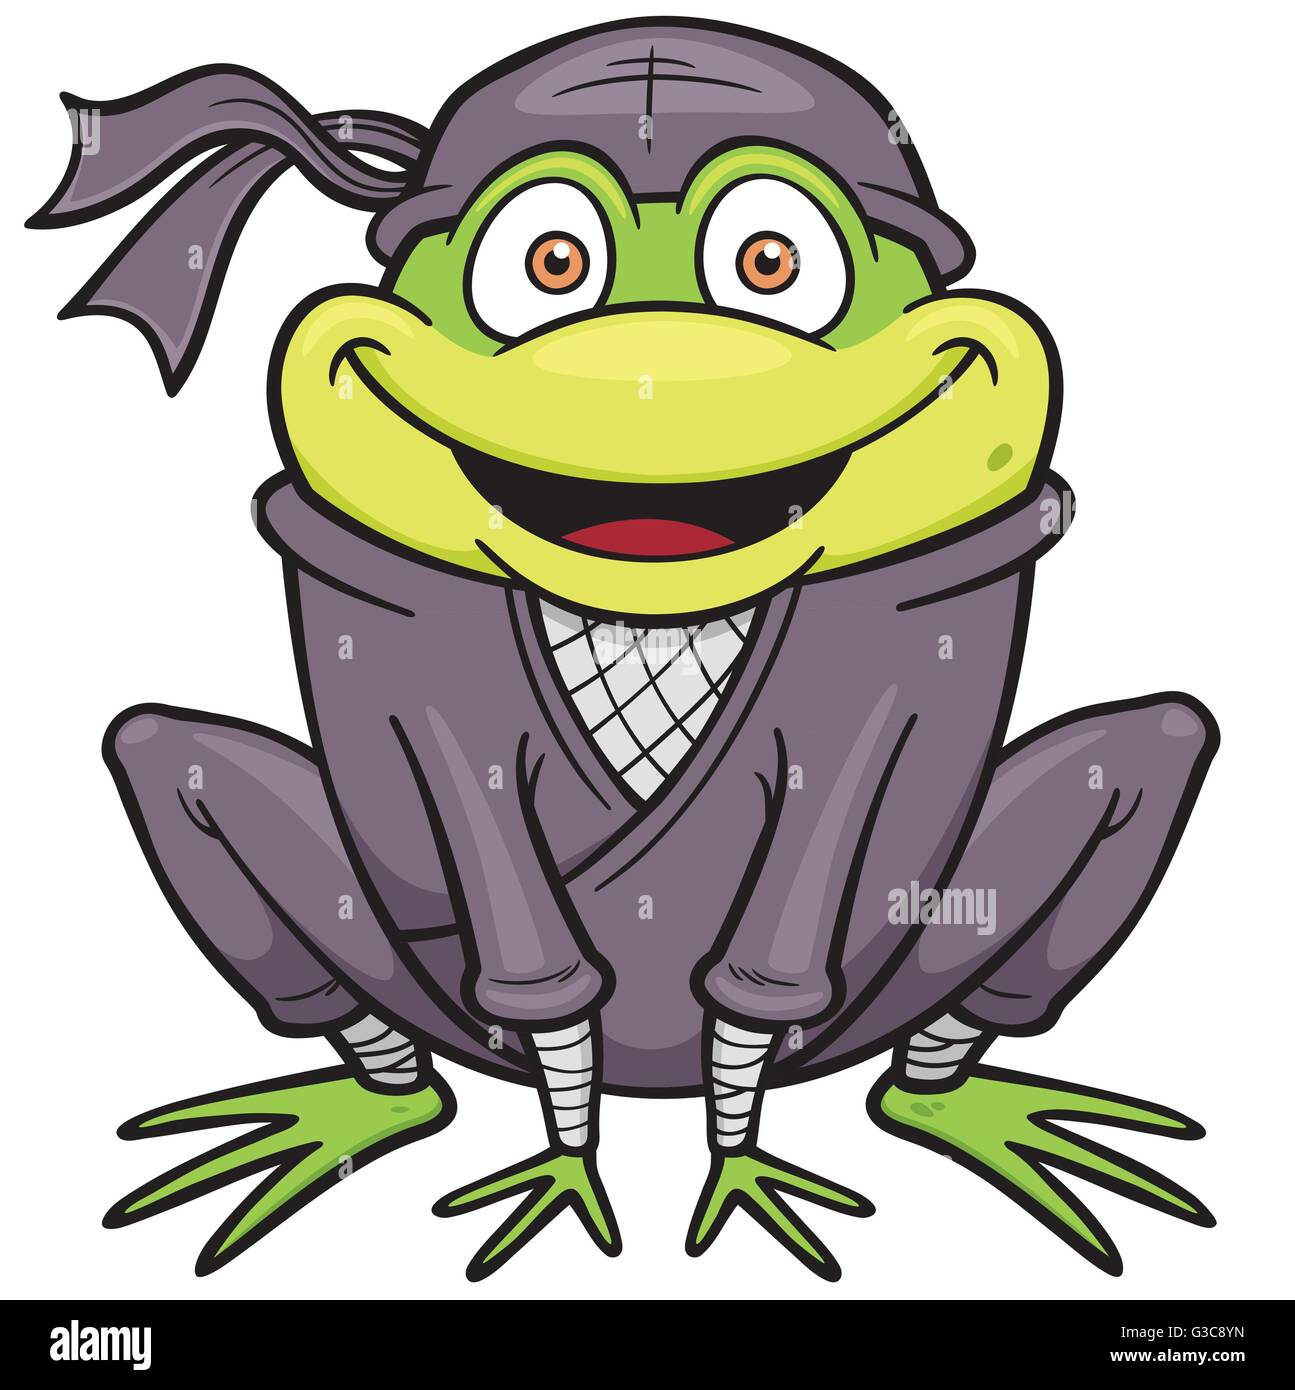 Samurai Frog High Resolution Stock Photography And Images Alamy